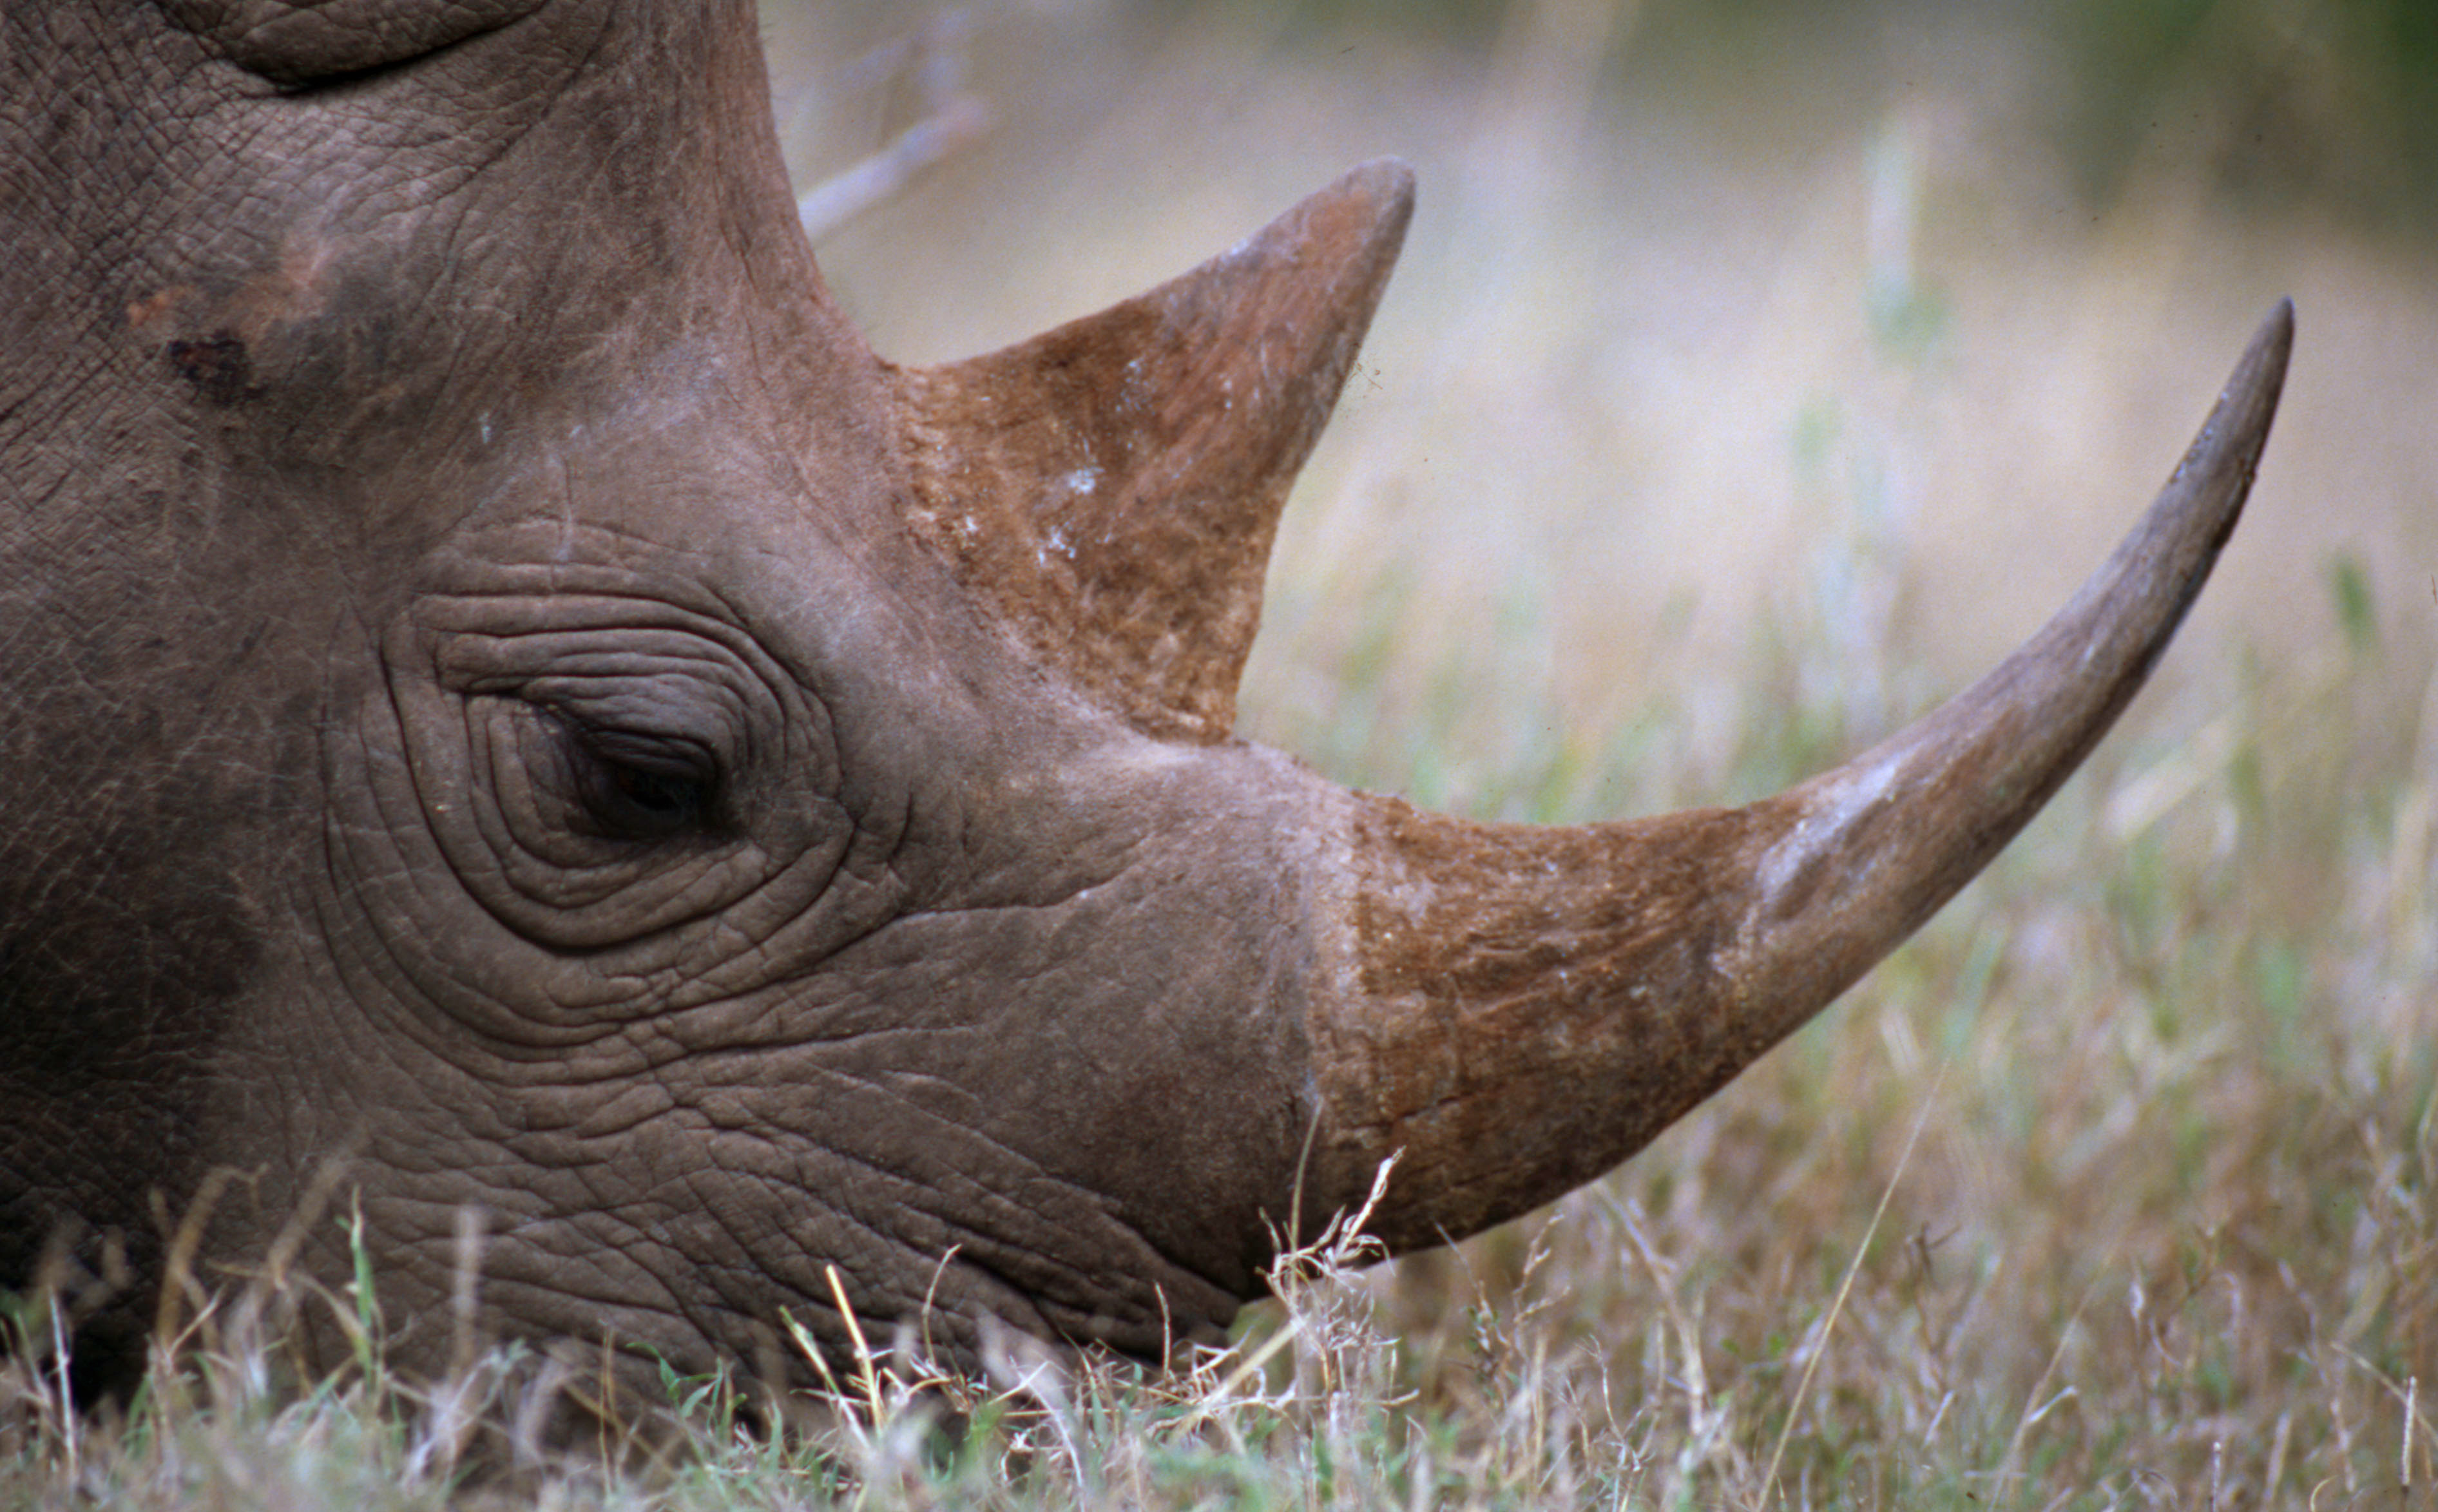 WWF's 'Most Wanted' List Highlights 10 of the Most Widely